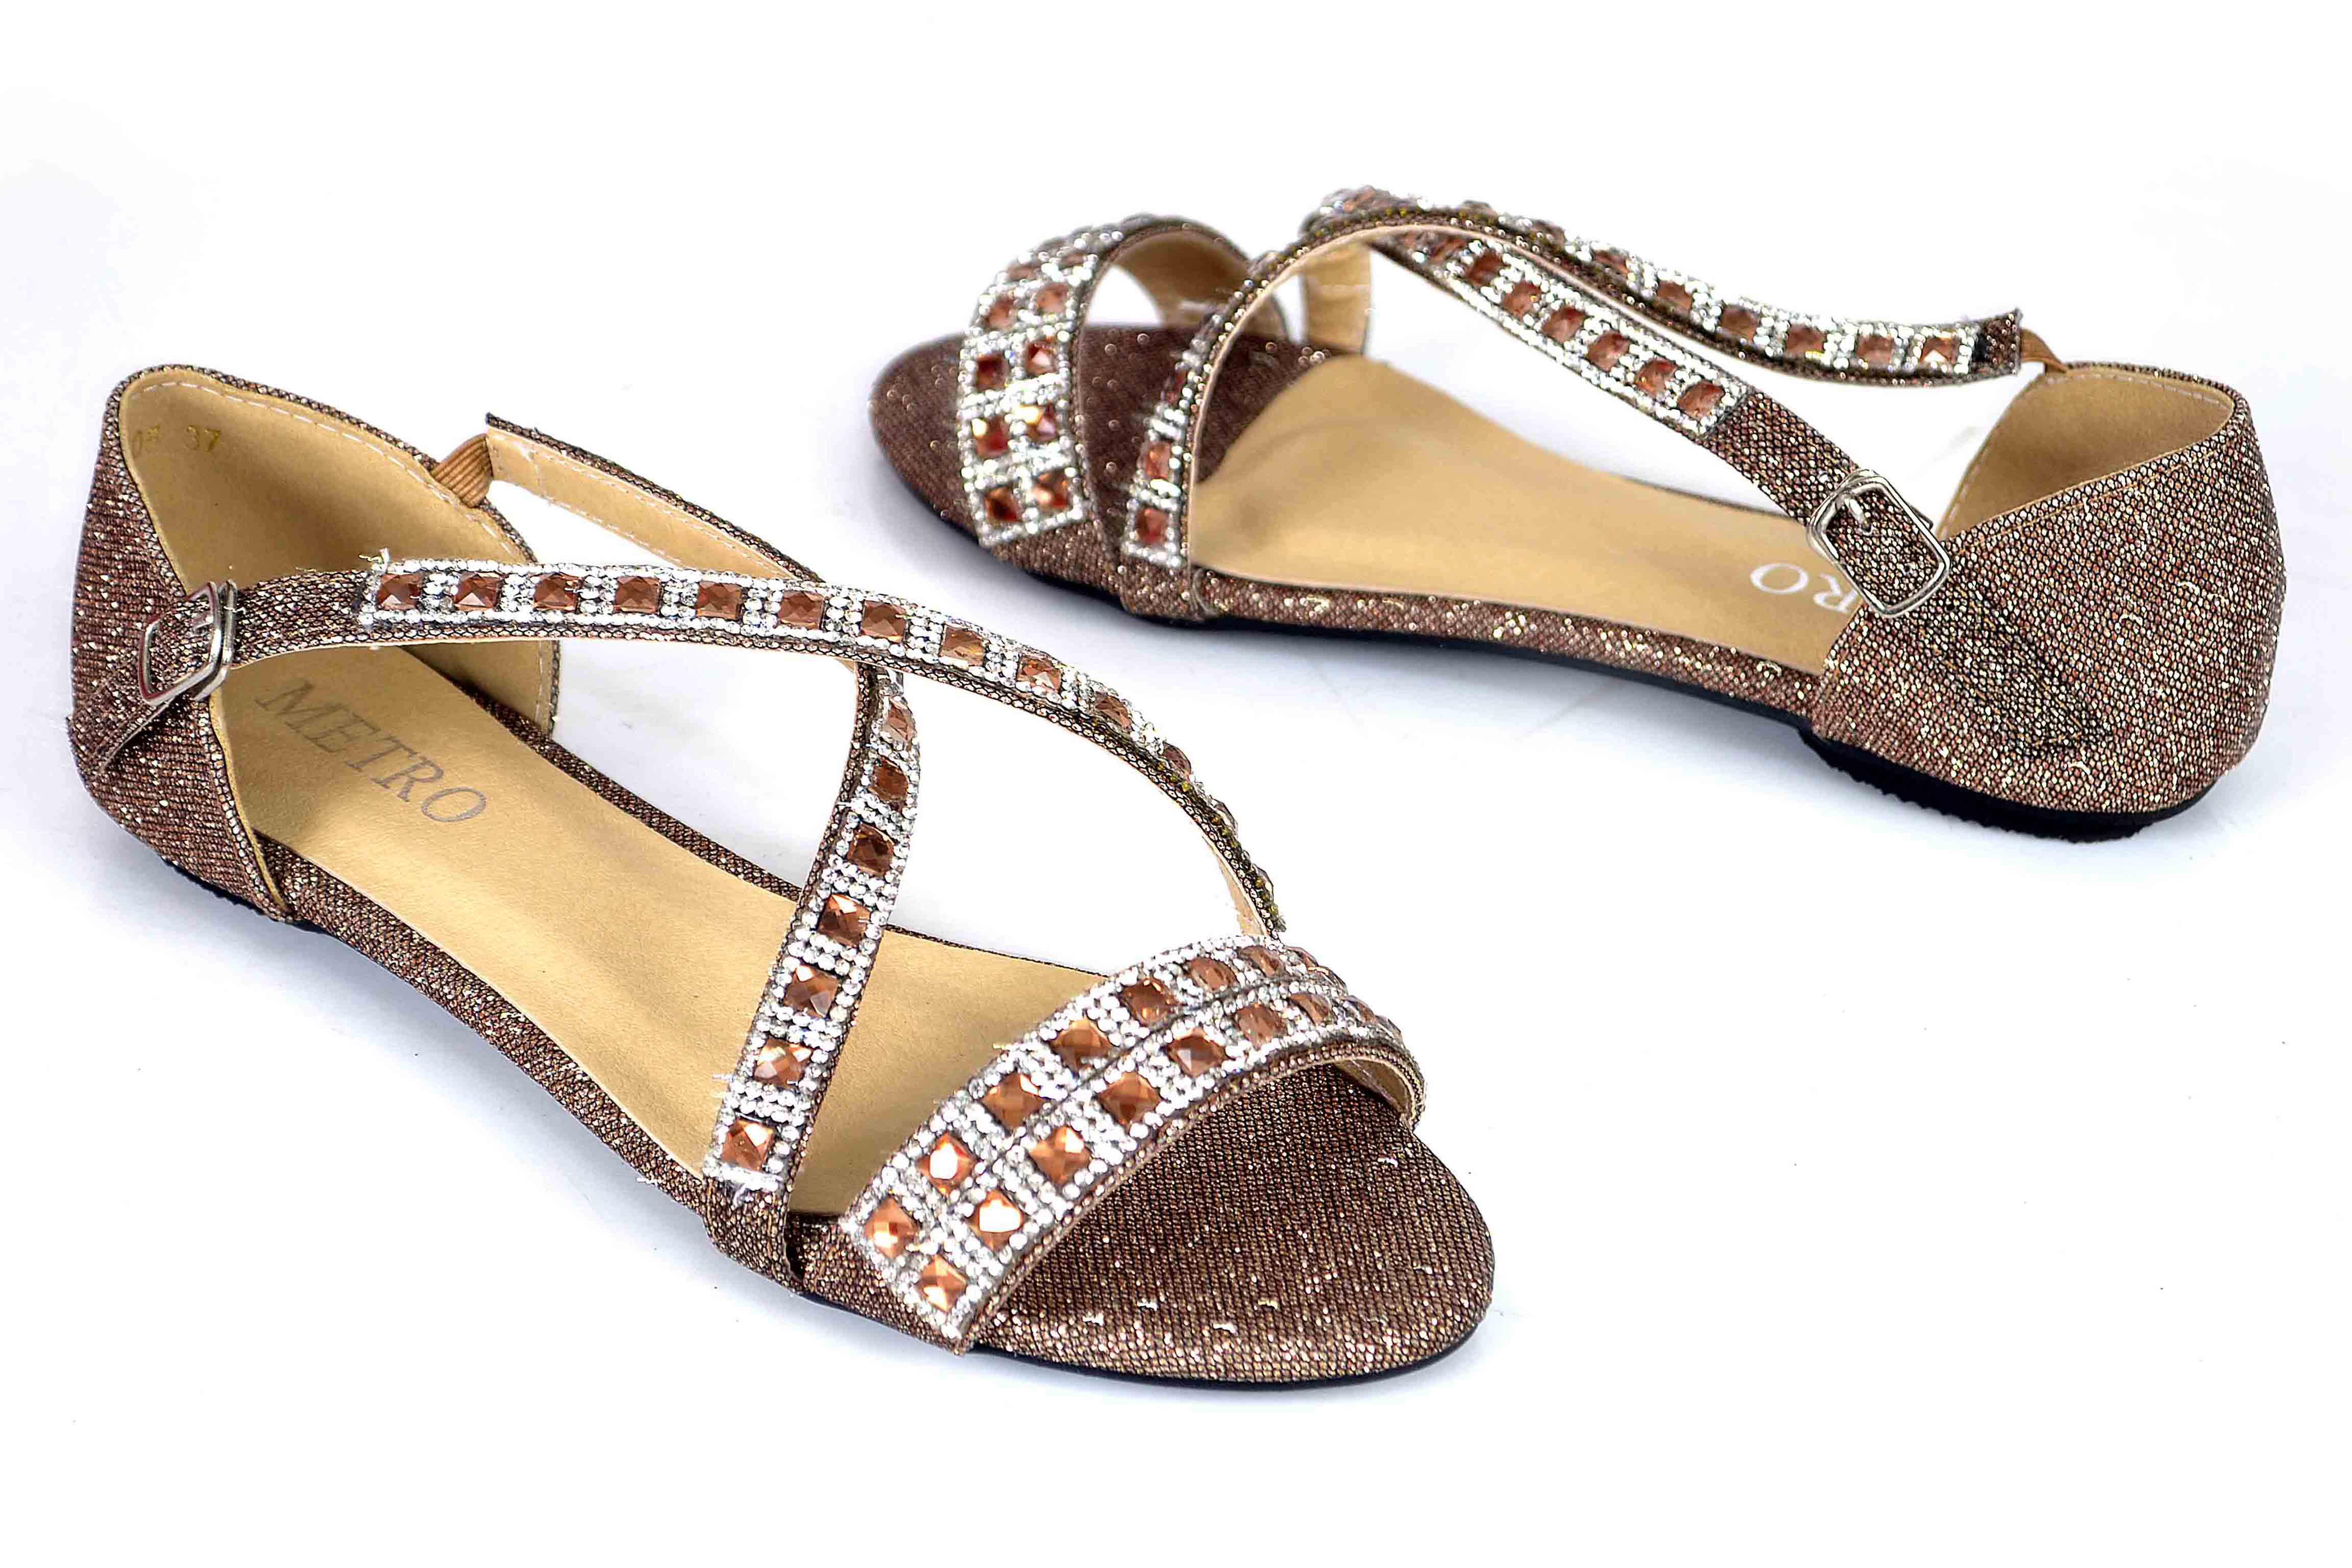 Metro-Shoes-Spring-Summer-Collection-2015-2016 (14)